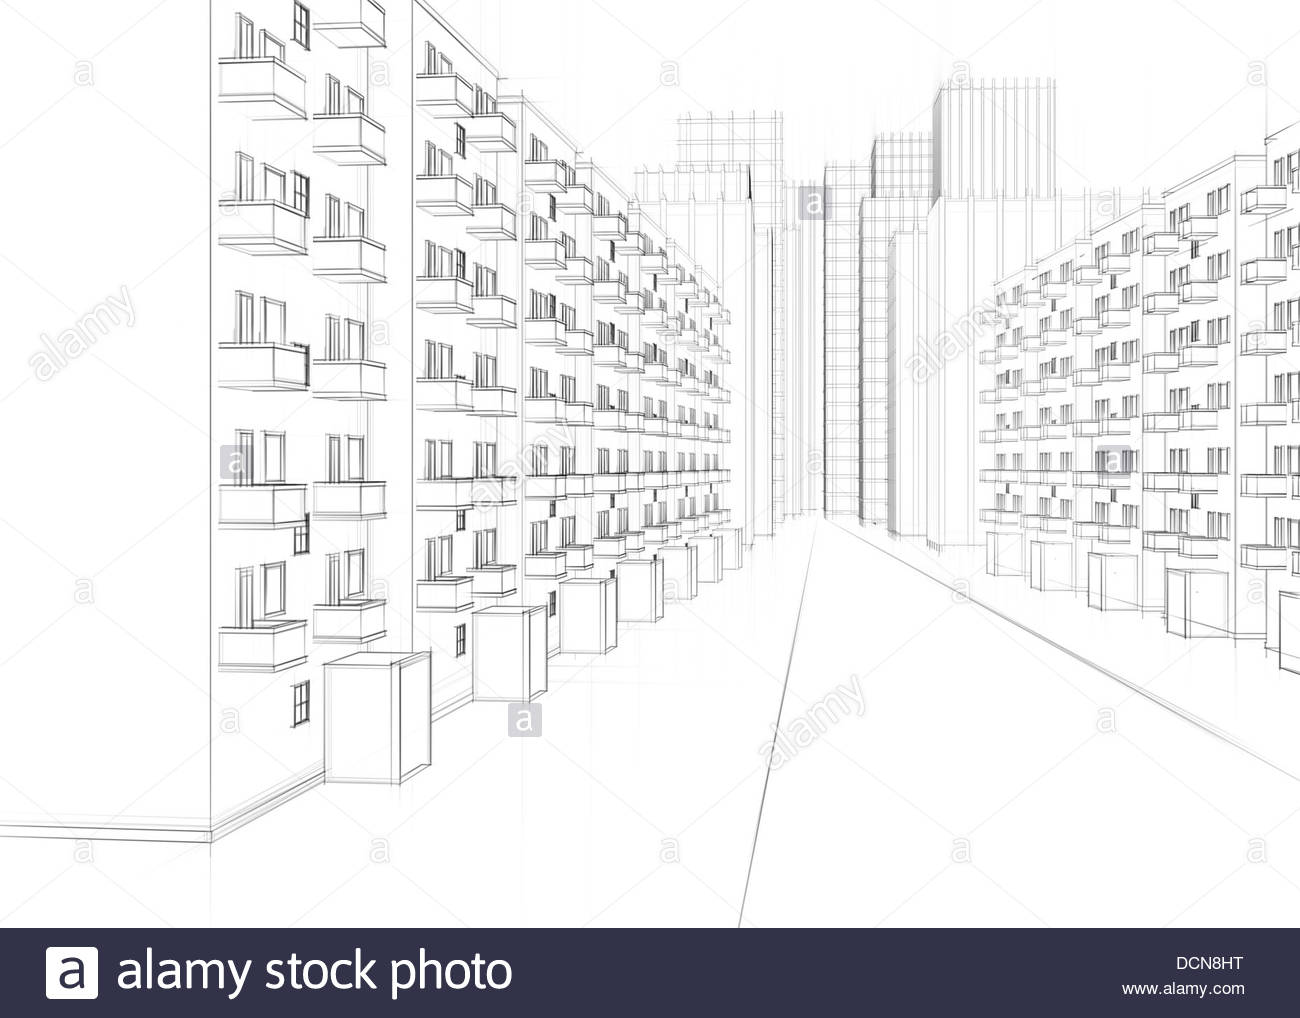 1300x1018 Drawing Of A City Street With Apartment Buildings And Skyscrapers